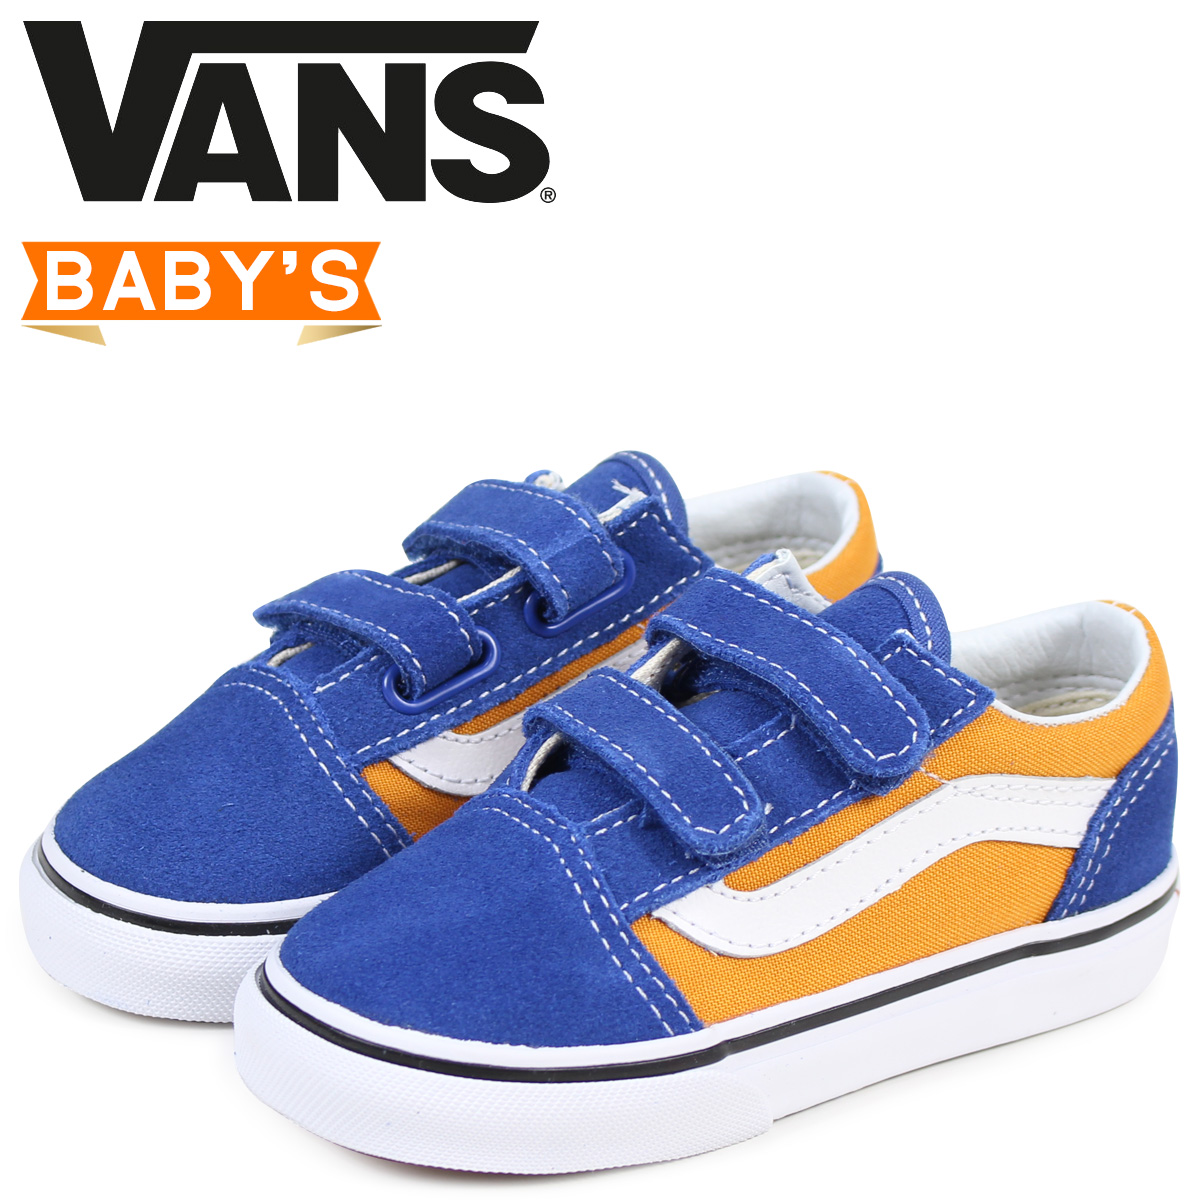 61920e1e2b48 Sugar Online Shop  Vans old school baby sneakers VANS station wagons ...